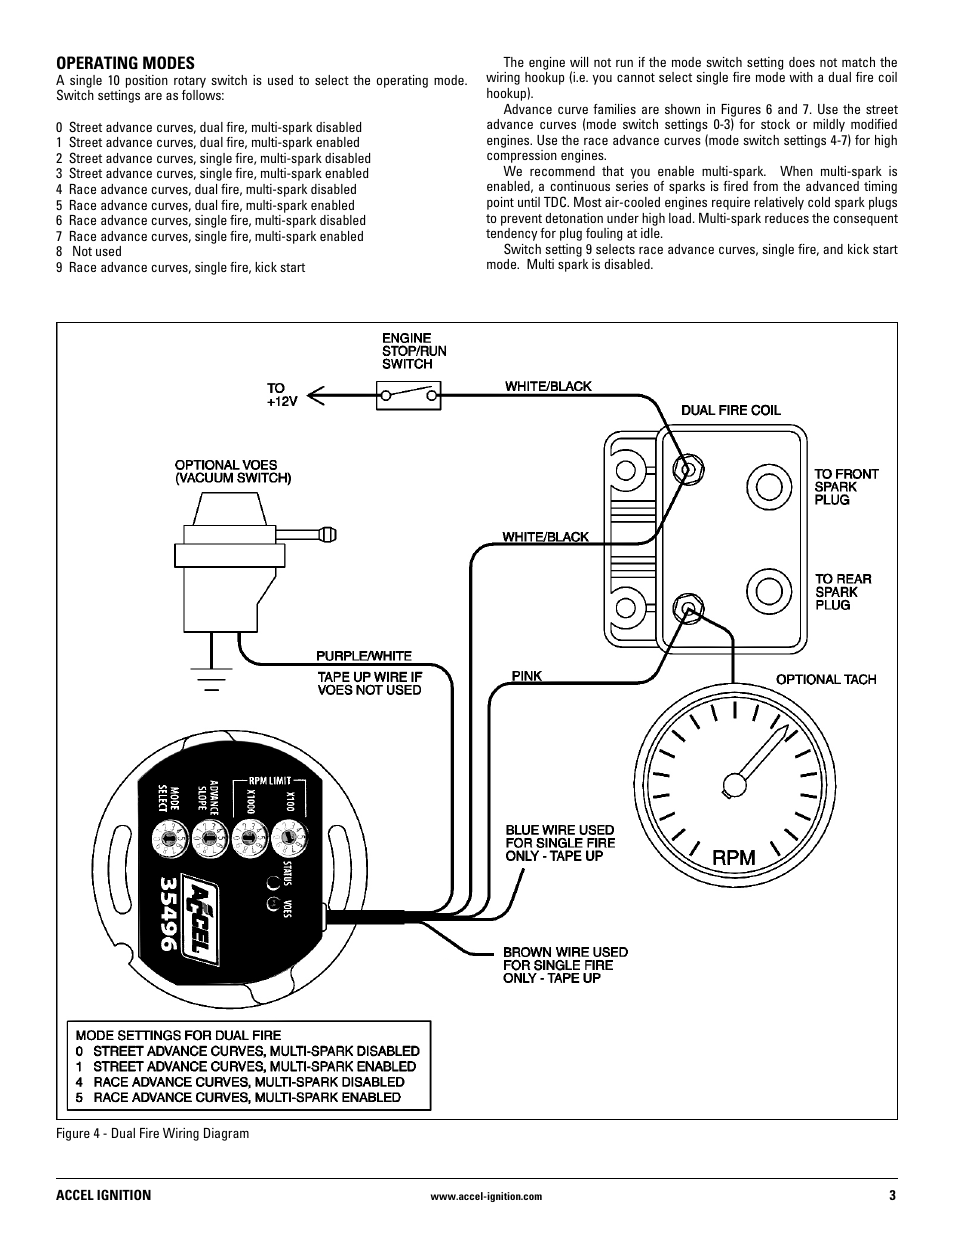 mallory ignition accel ignition 35496 page3?resize\=665%2C861 accell ignition wiring diagram accel 300 wiring diagrams  at bayanpartner.co